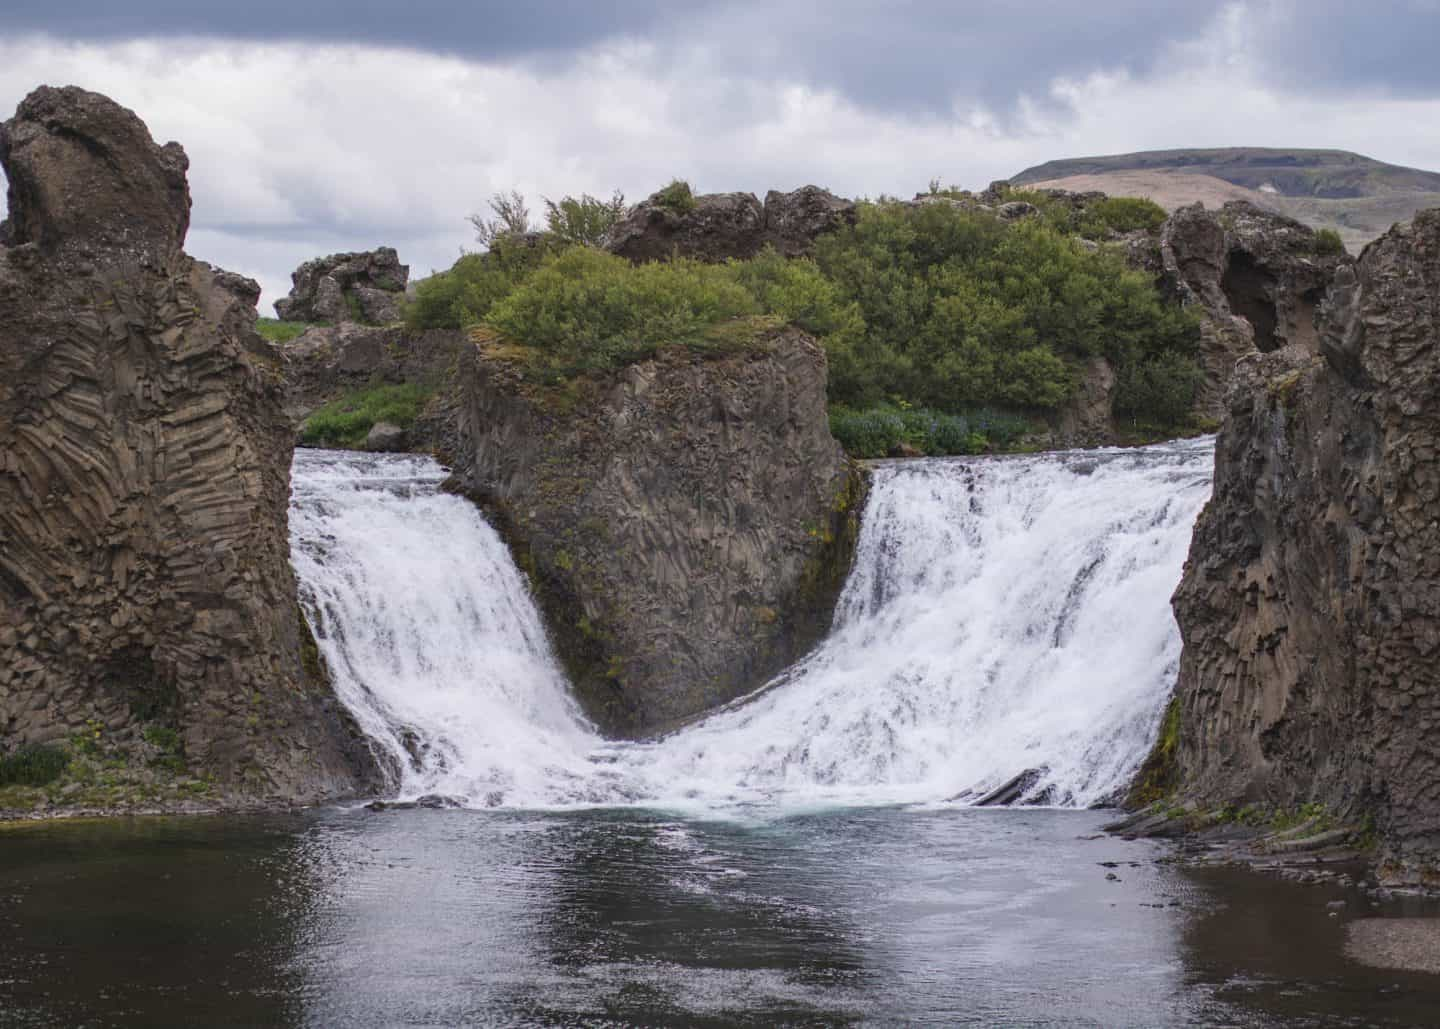 Hjalparfoss Waterfall along the Golden Circle on Iceland's Ring Road